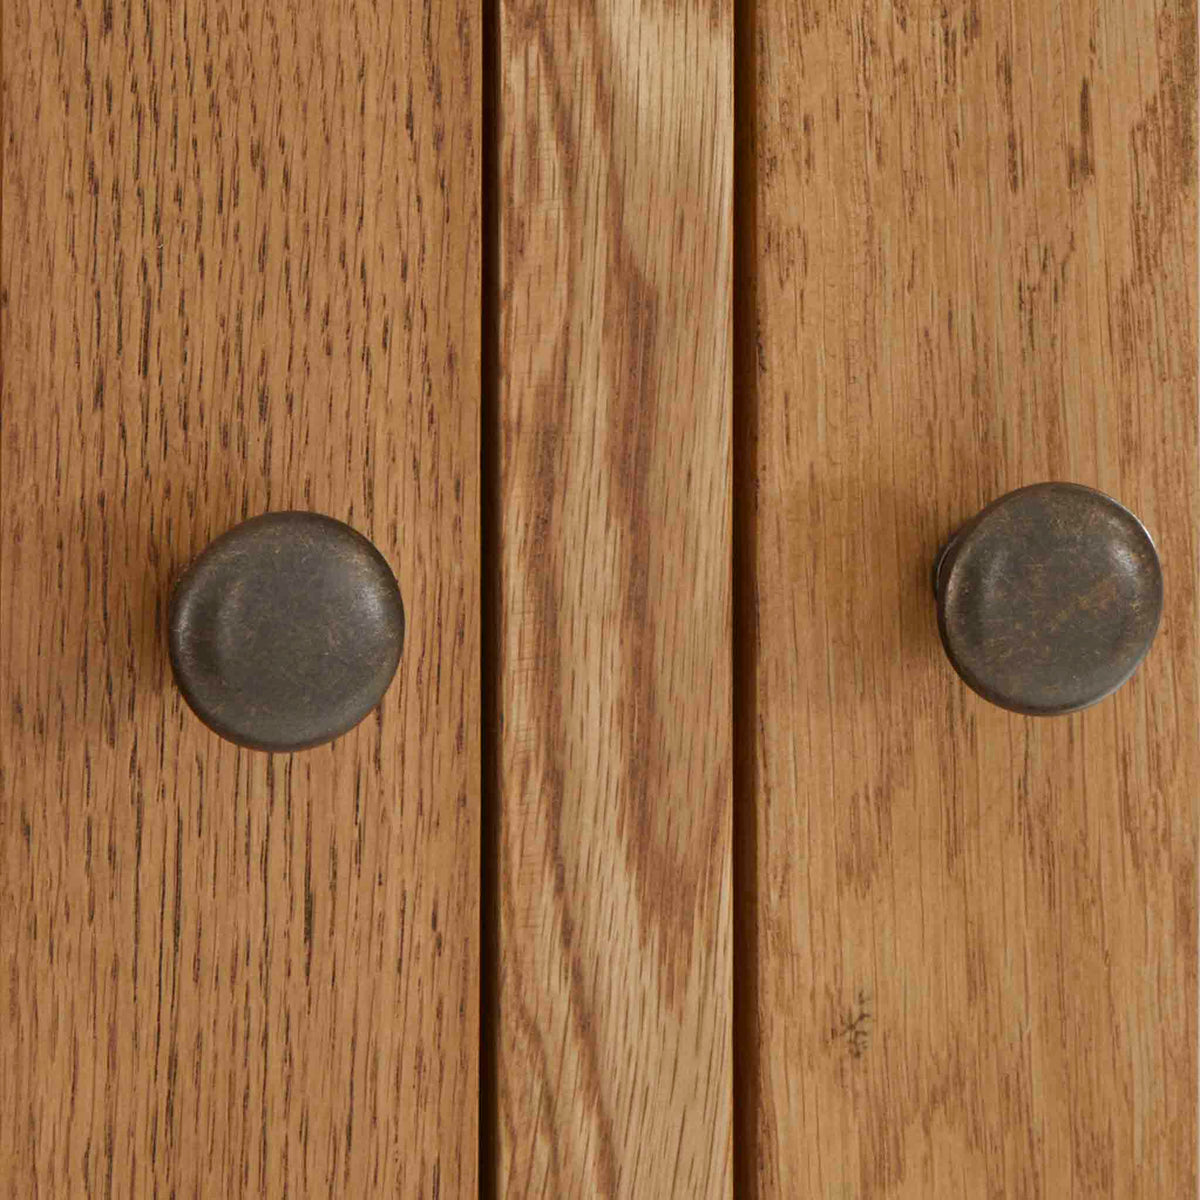 Zelah Oak Large Triple Wardrobe with Drawers - Close up of door knobs